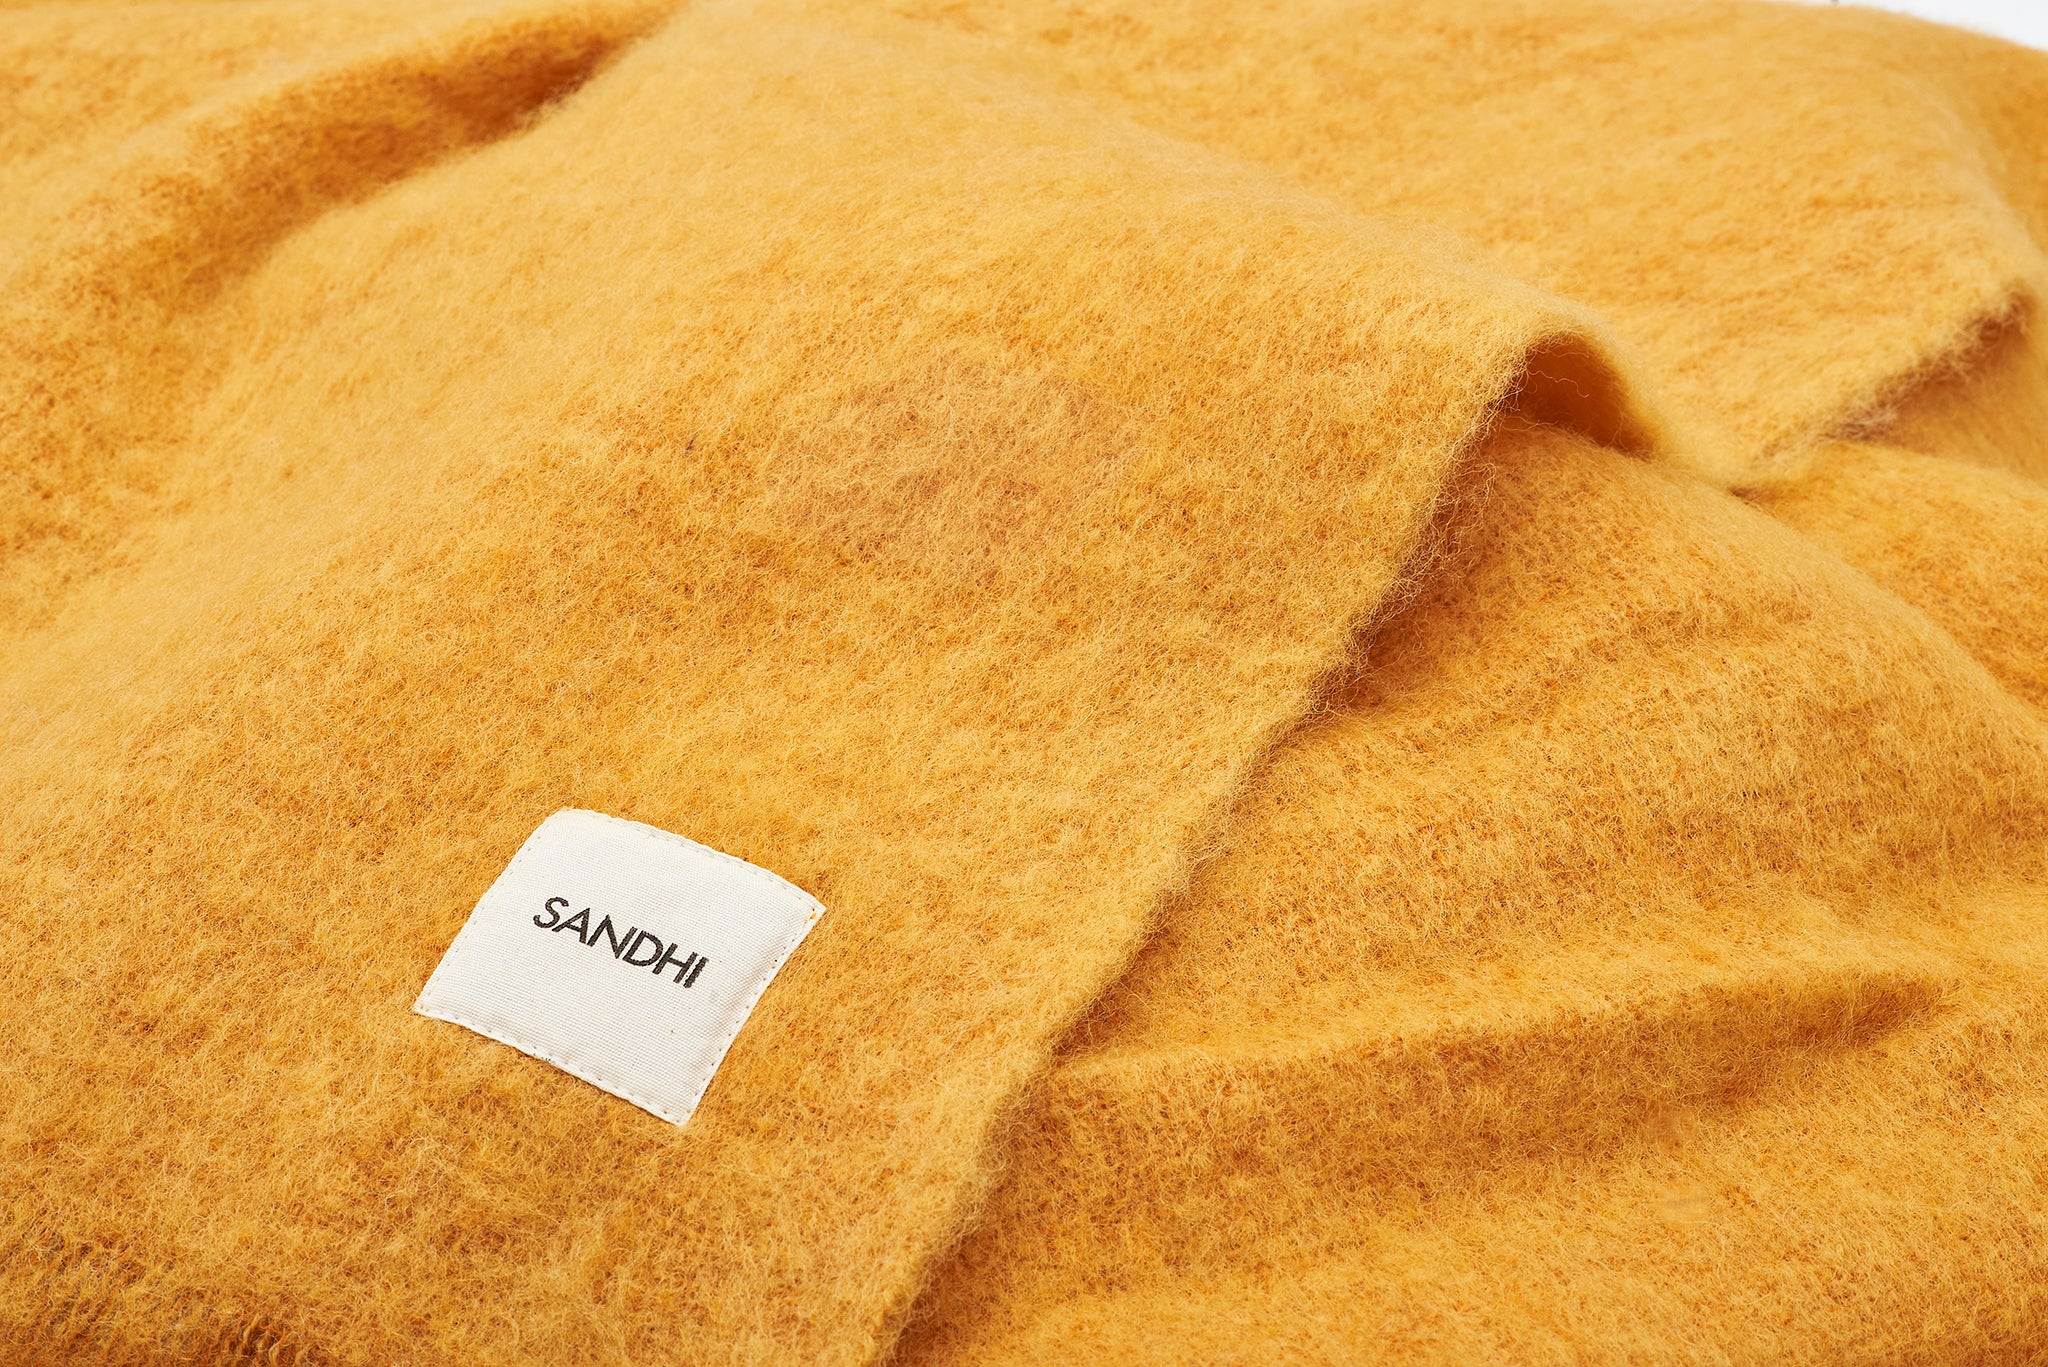 Soft & Plush Plaid Blanket | Sandhi